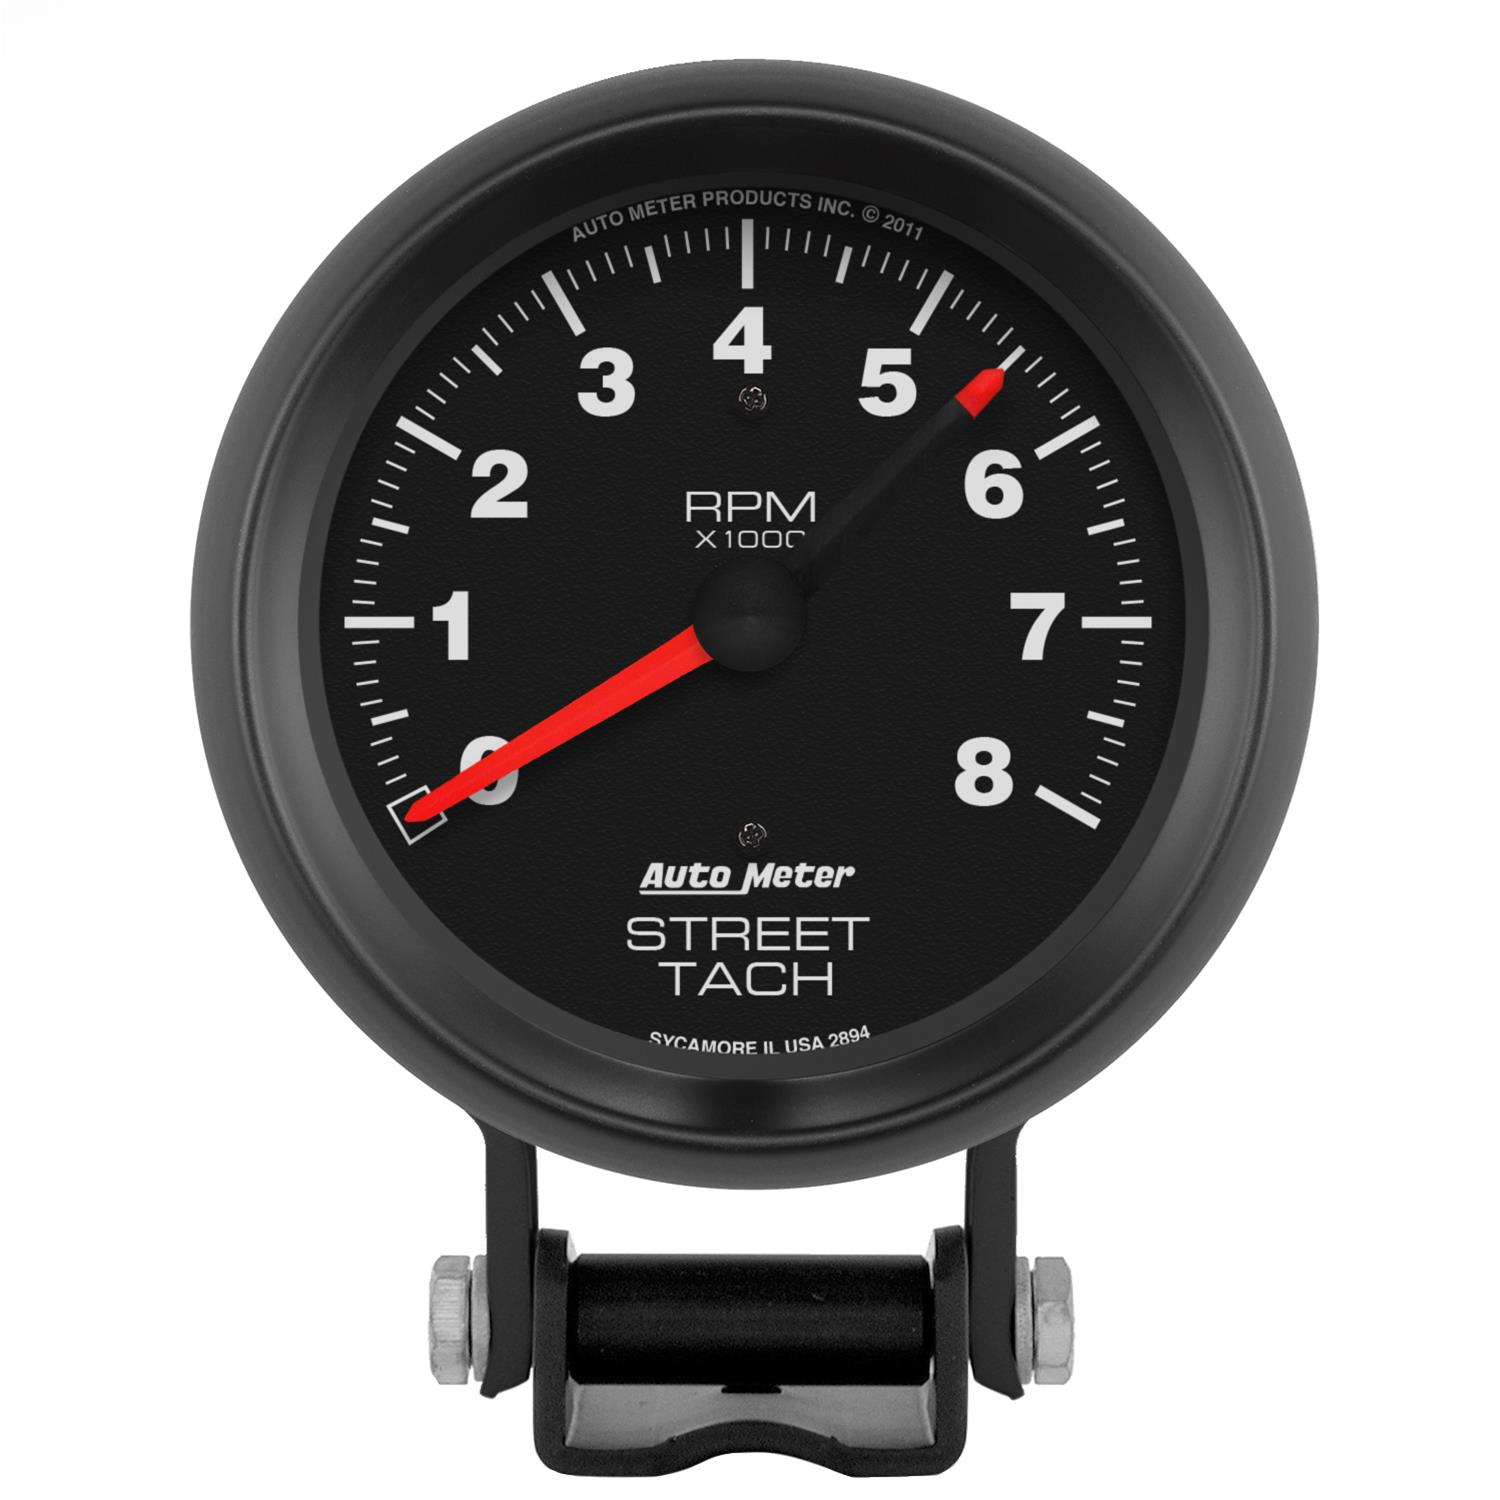 autometer performance series street tachometers 2894 free shippingautometer performance series street tachometers 2894 free shipping on orders over $99 at summit racing